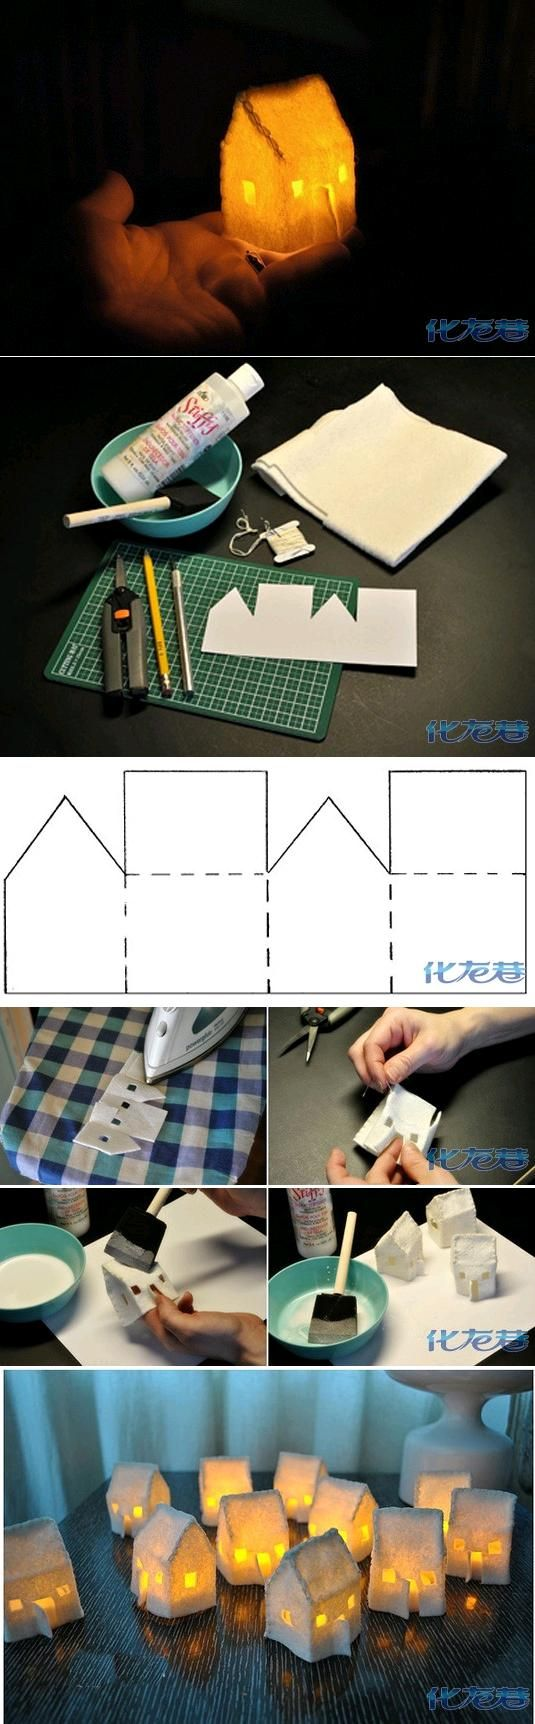 DIY Creative Cabin Lights This would be a great project for the kids!